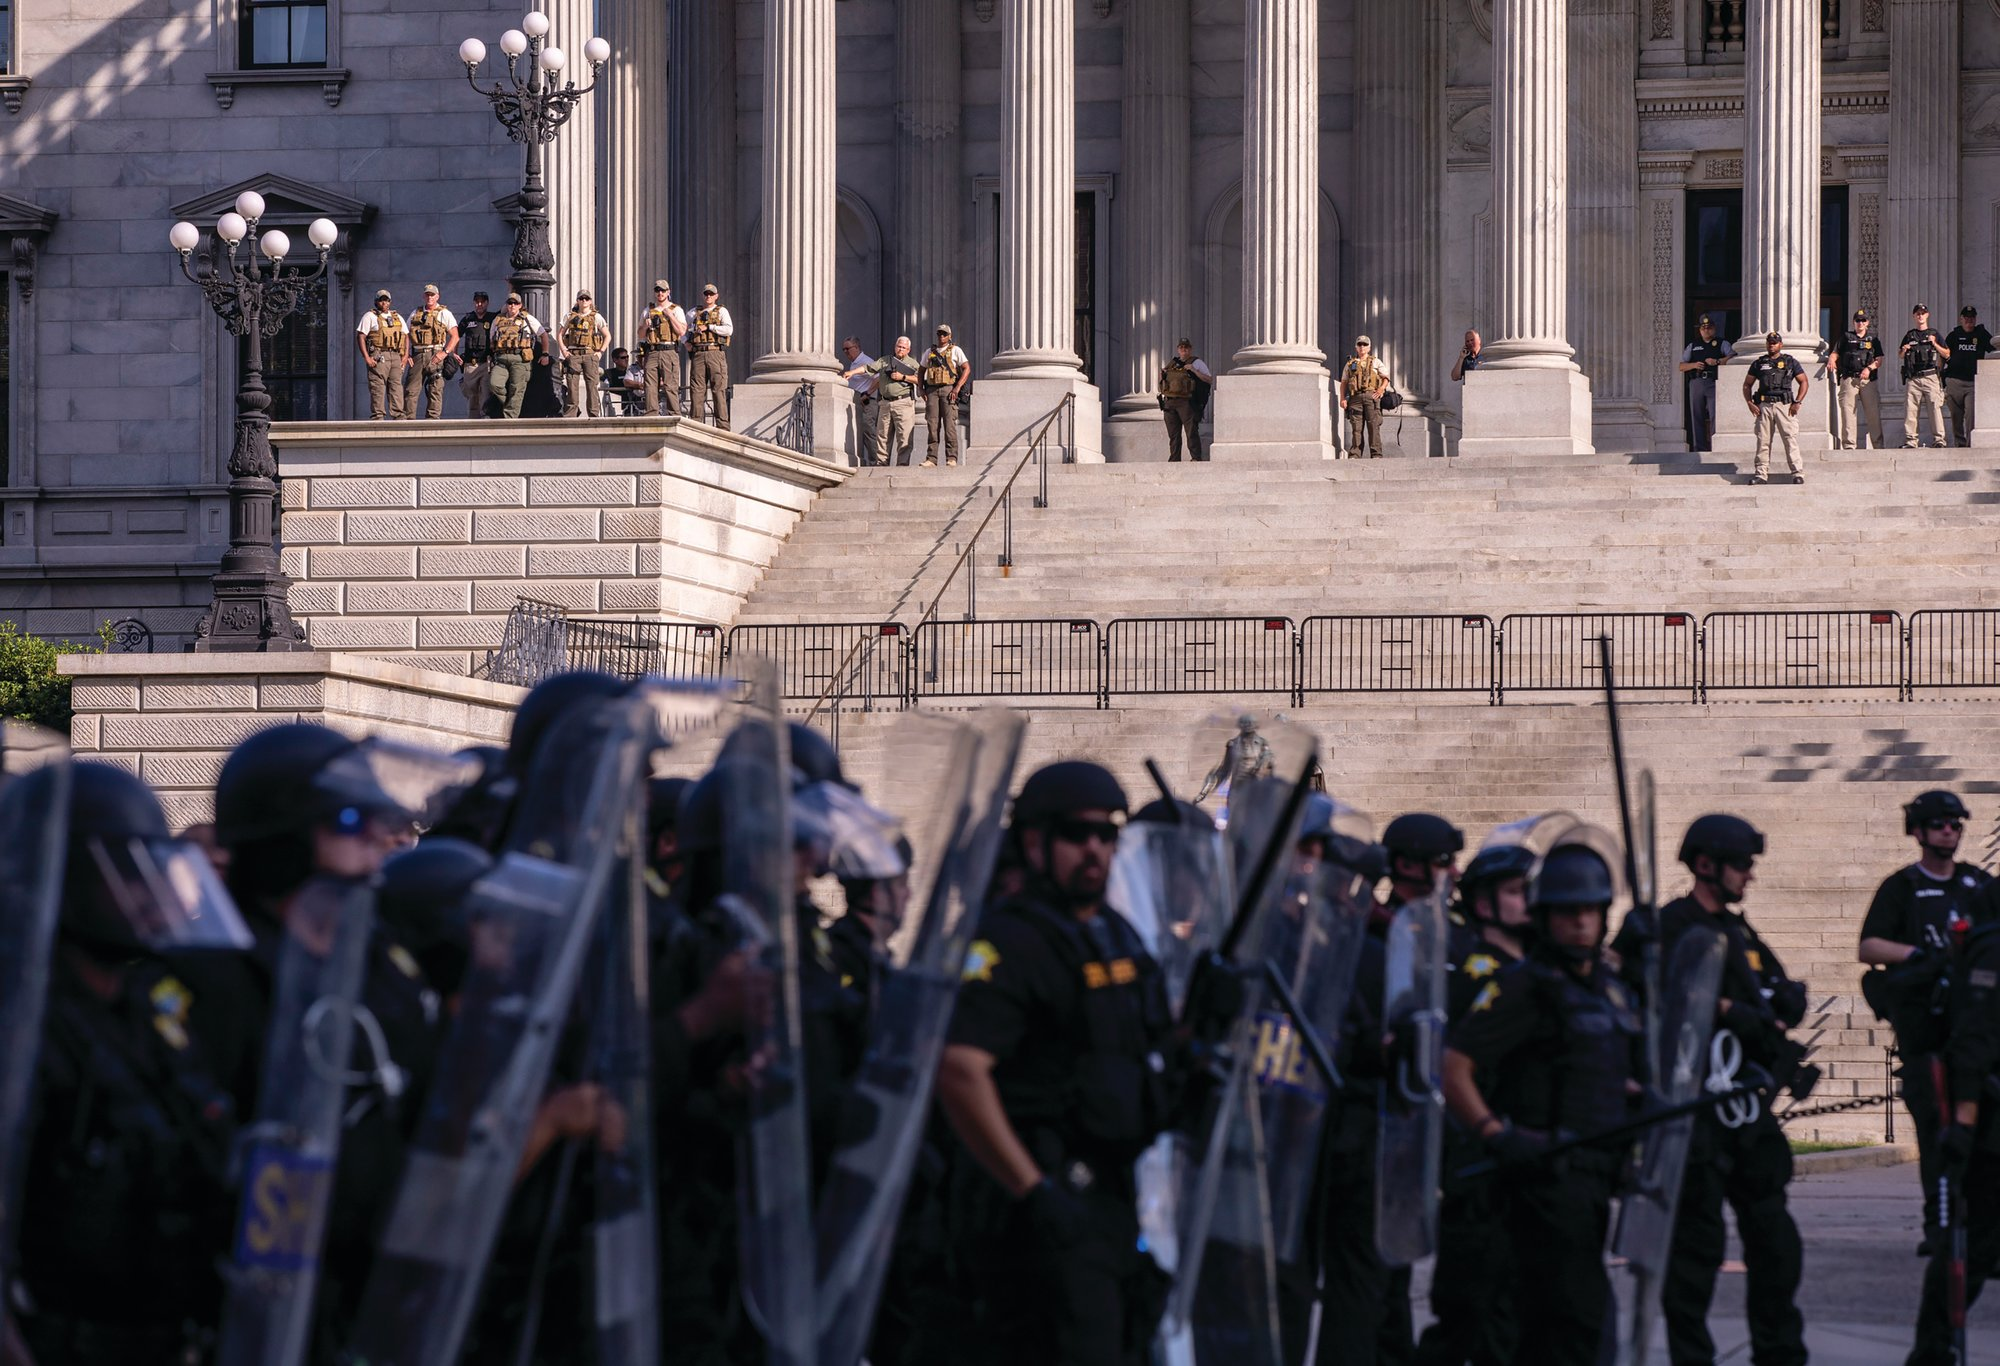 Police line up in riot gear Sunday as law enforcement officers watch from the Statehouse stairs in Columbia. Columbia Police and the Richland County Sheriff's Department enacted a curfew on Sunday night.